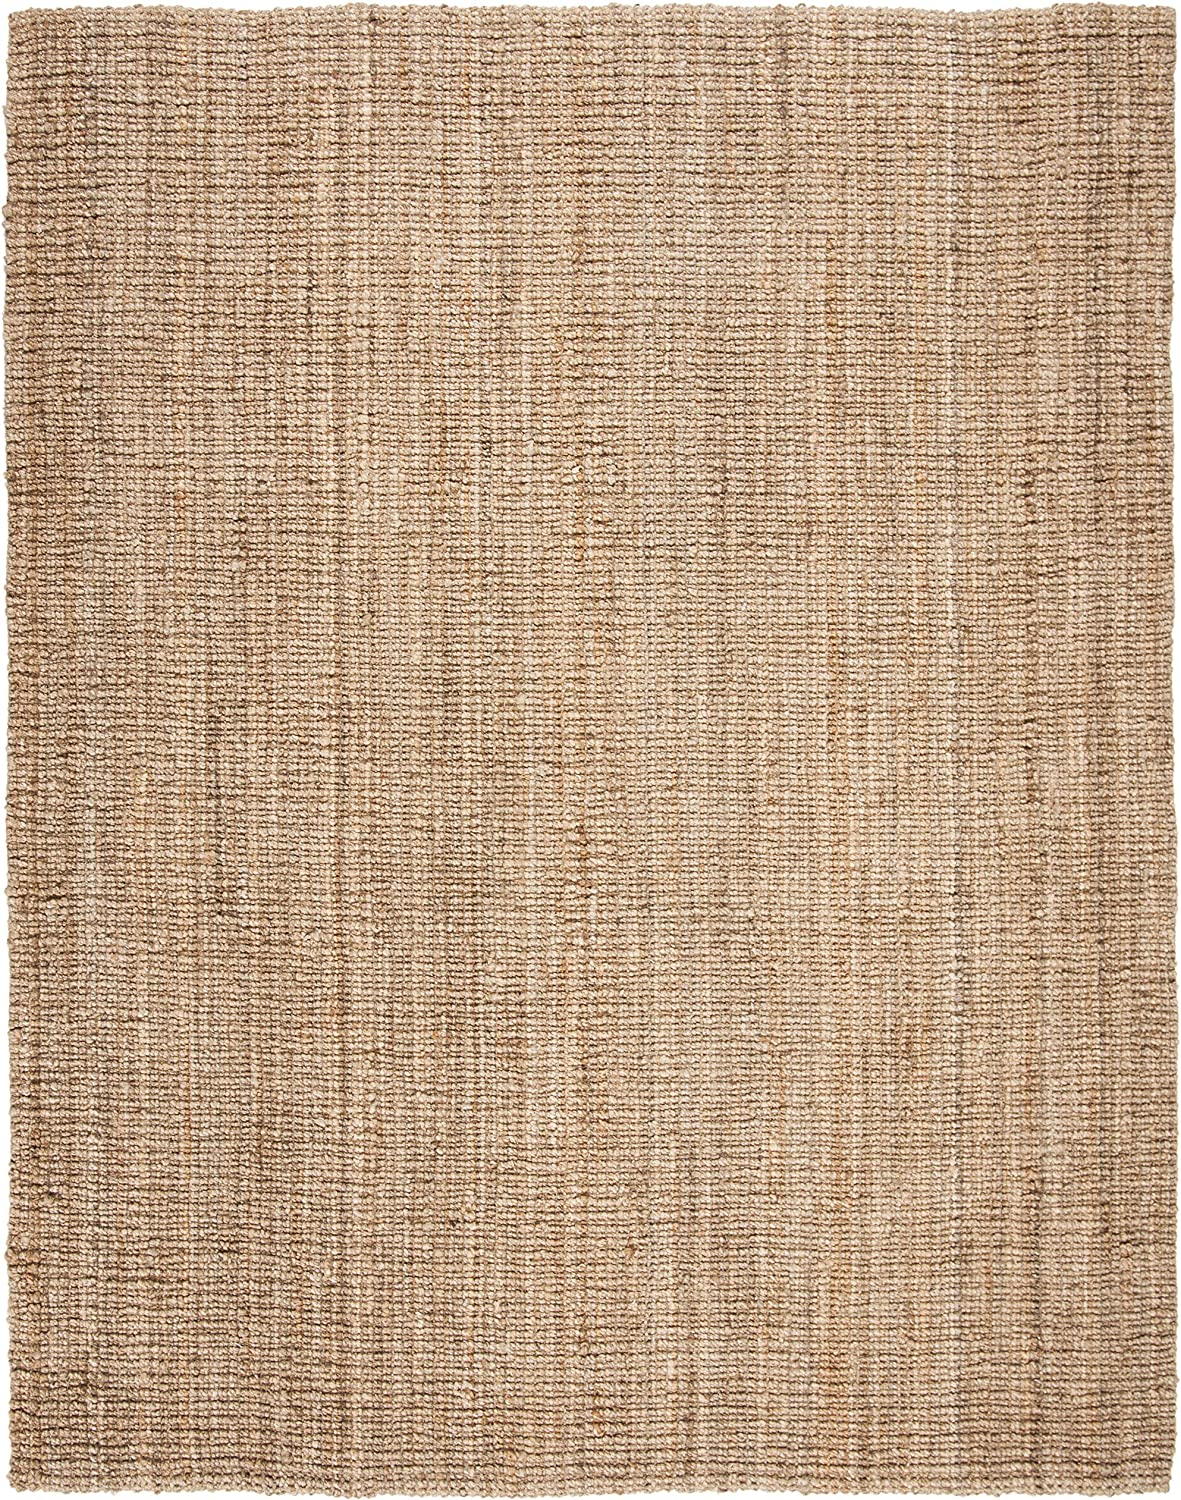 Safavieh Natural Fiber Collection Nf447a Hand Woven Natural Jute Area Rug 8 X 10 Amazon Ca Home Kitchen